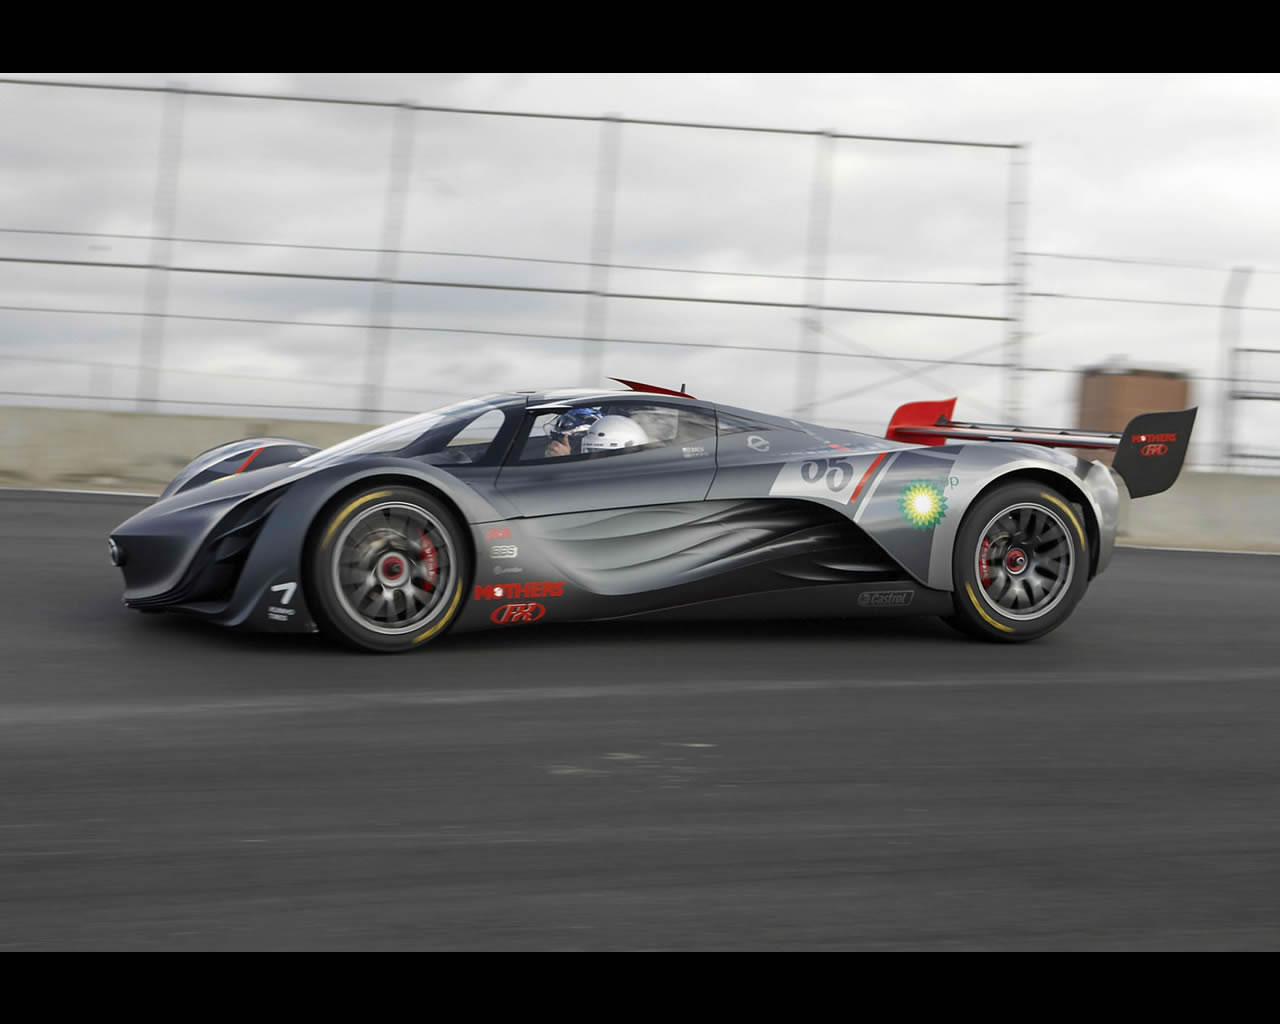 http://autoconcept-reviews.com/cars_reviews/mazda/mazda-furai-concept-2008/wallpaper/Mazda_Furai_25__jpg300.jpg